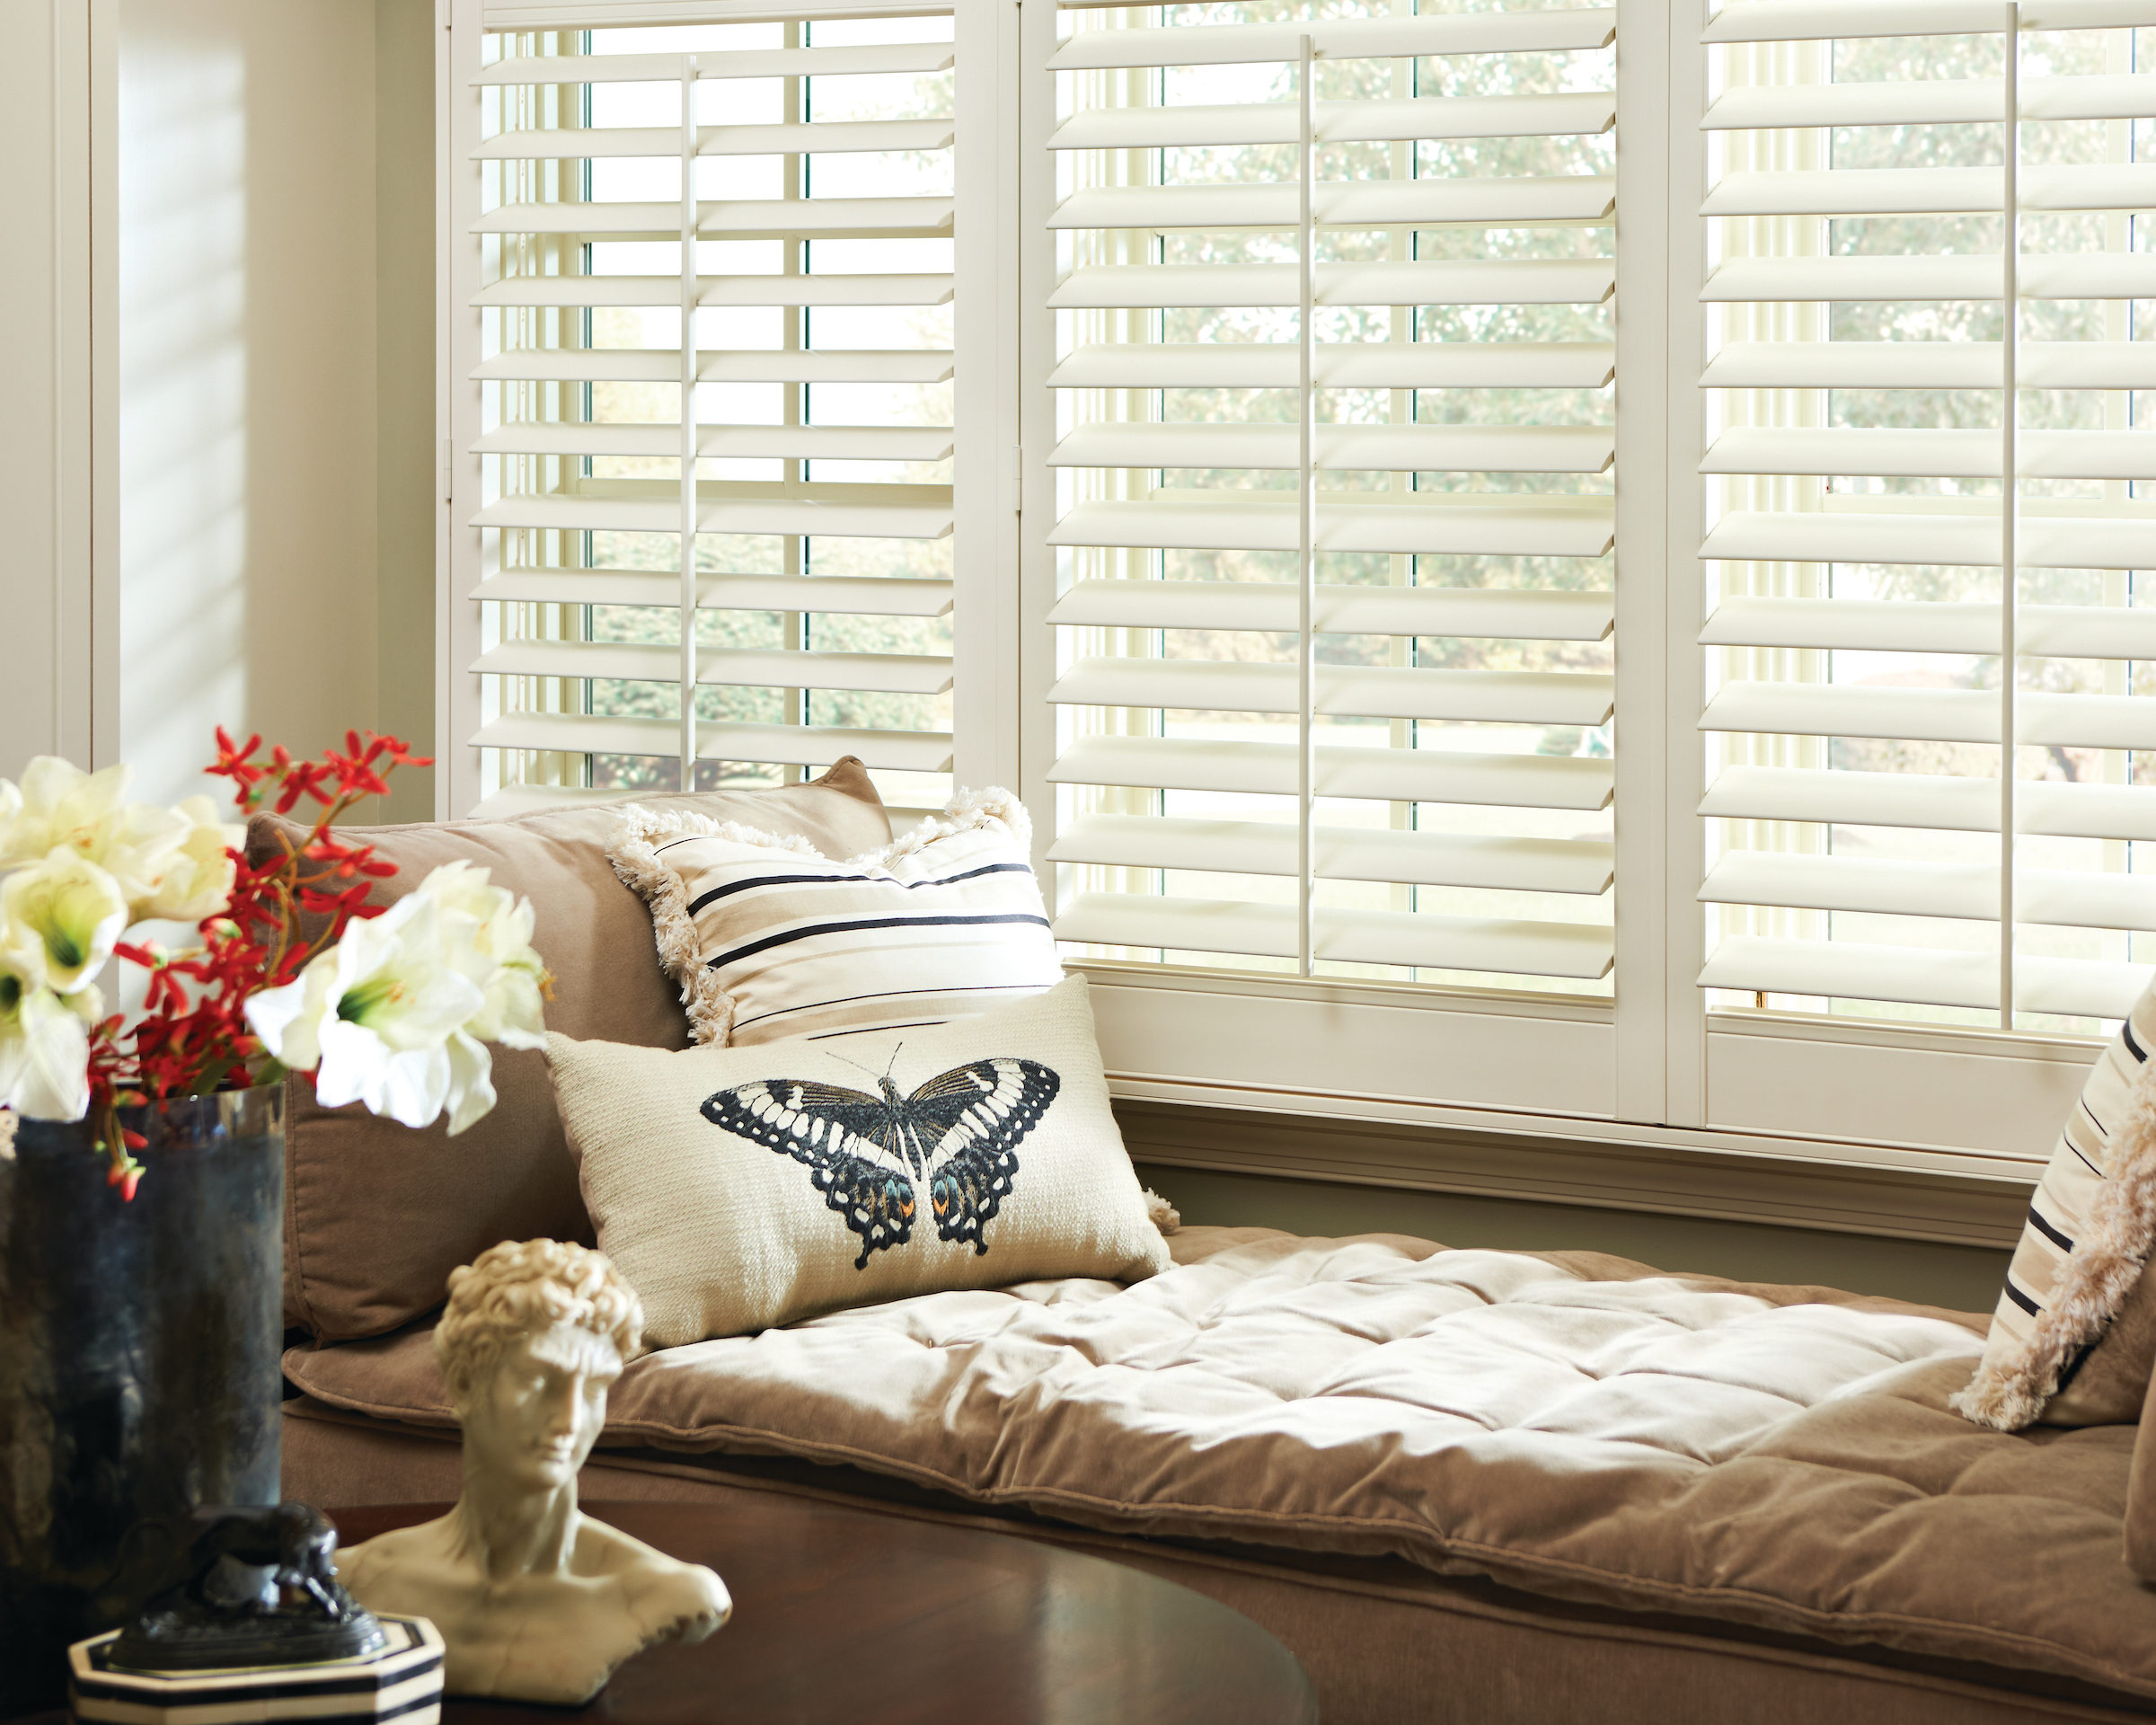 Eclipse plantation shutters in study